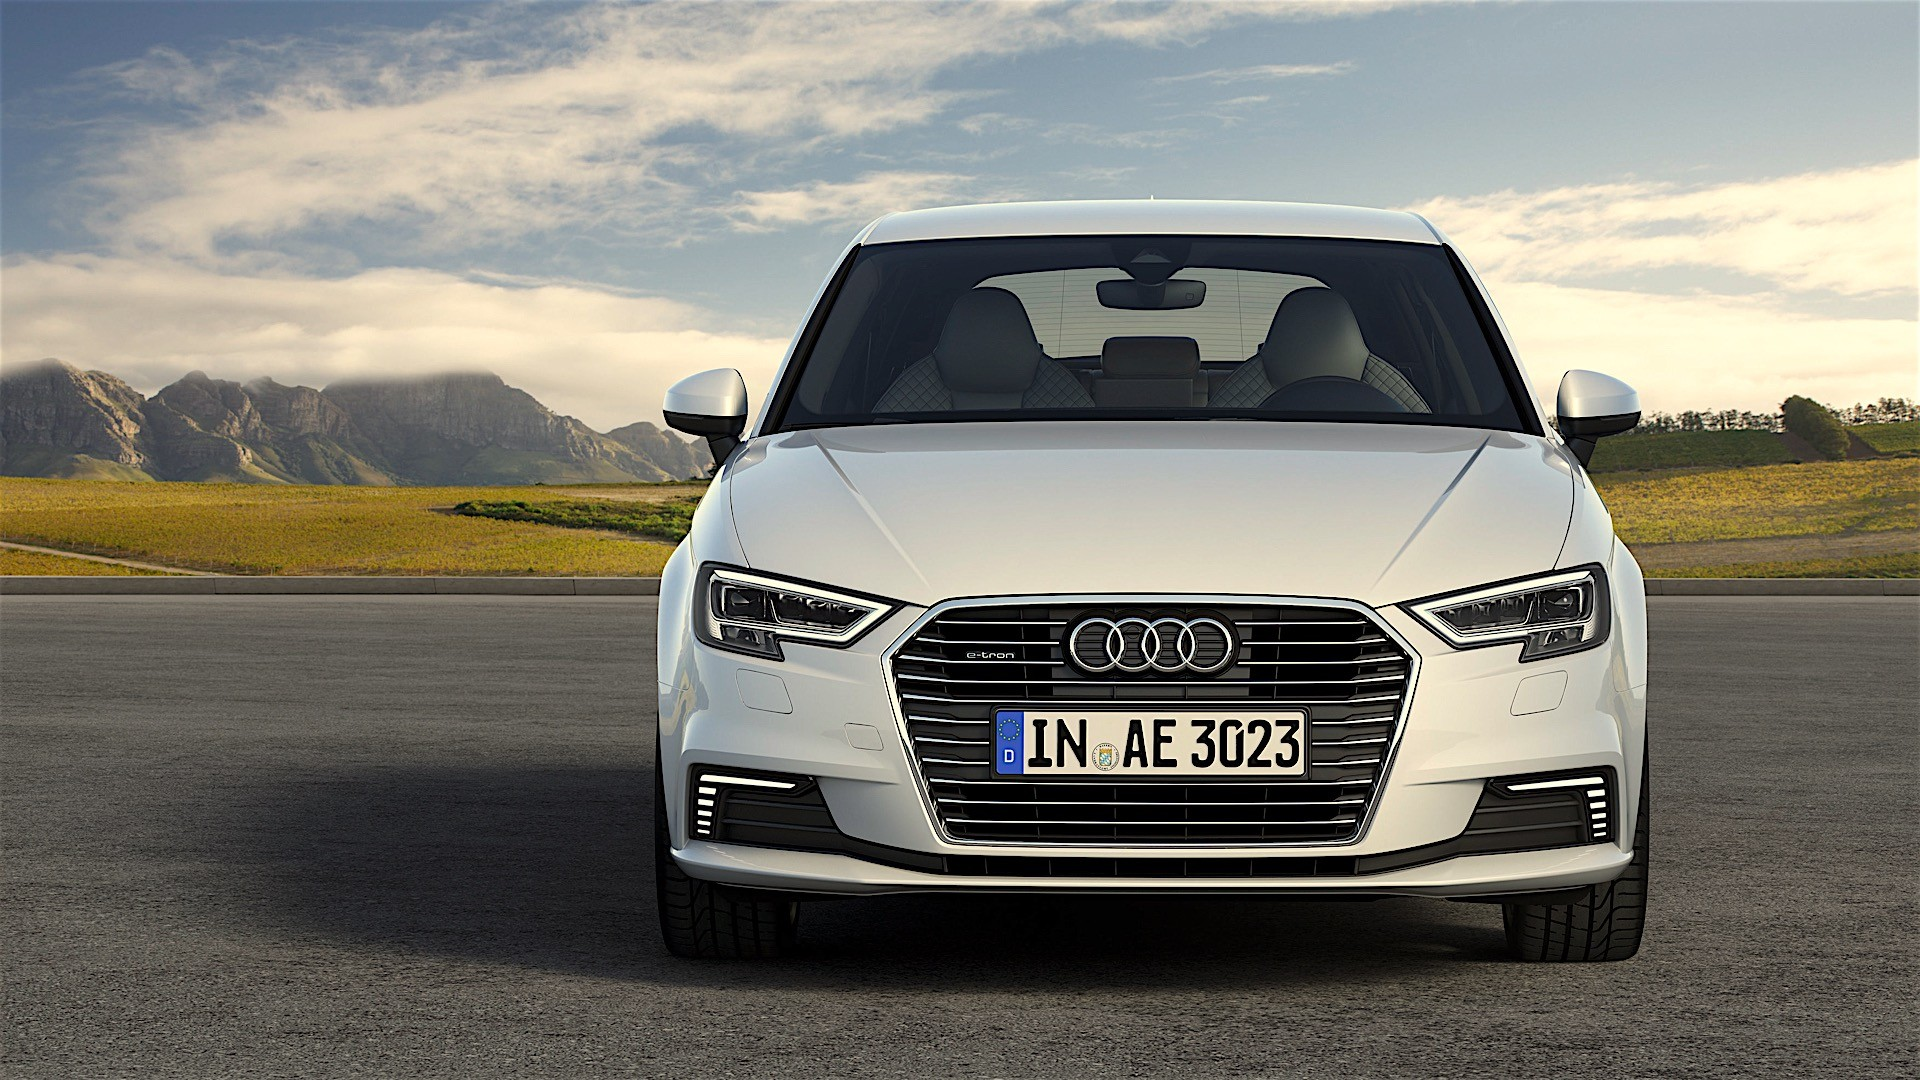 2017 Audi A3 Facelift Configurator Launched in Germany, S3 Not Ready Yet - autoevolution